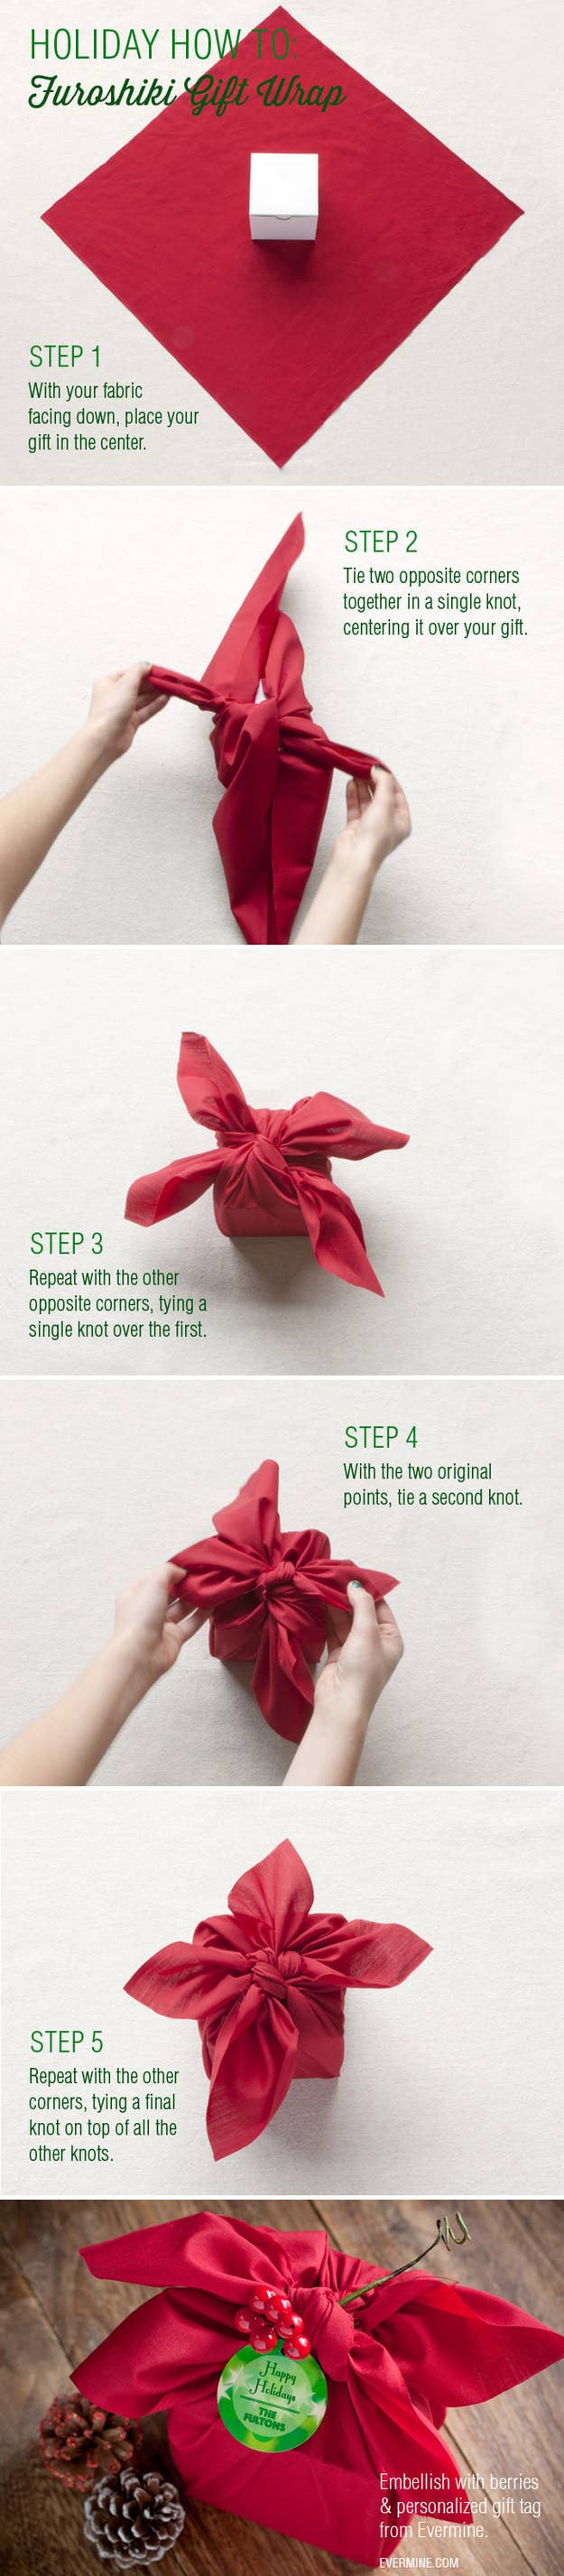 27 clever gift wrapping tricks for lazy people clean out your closet while wrapping gifts so much multitasking solutioingenieria Gallery